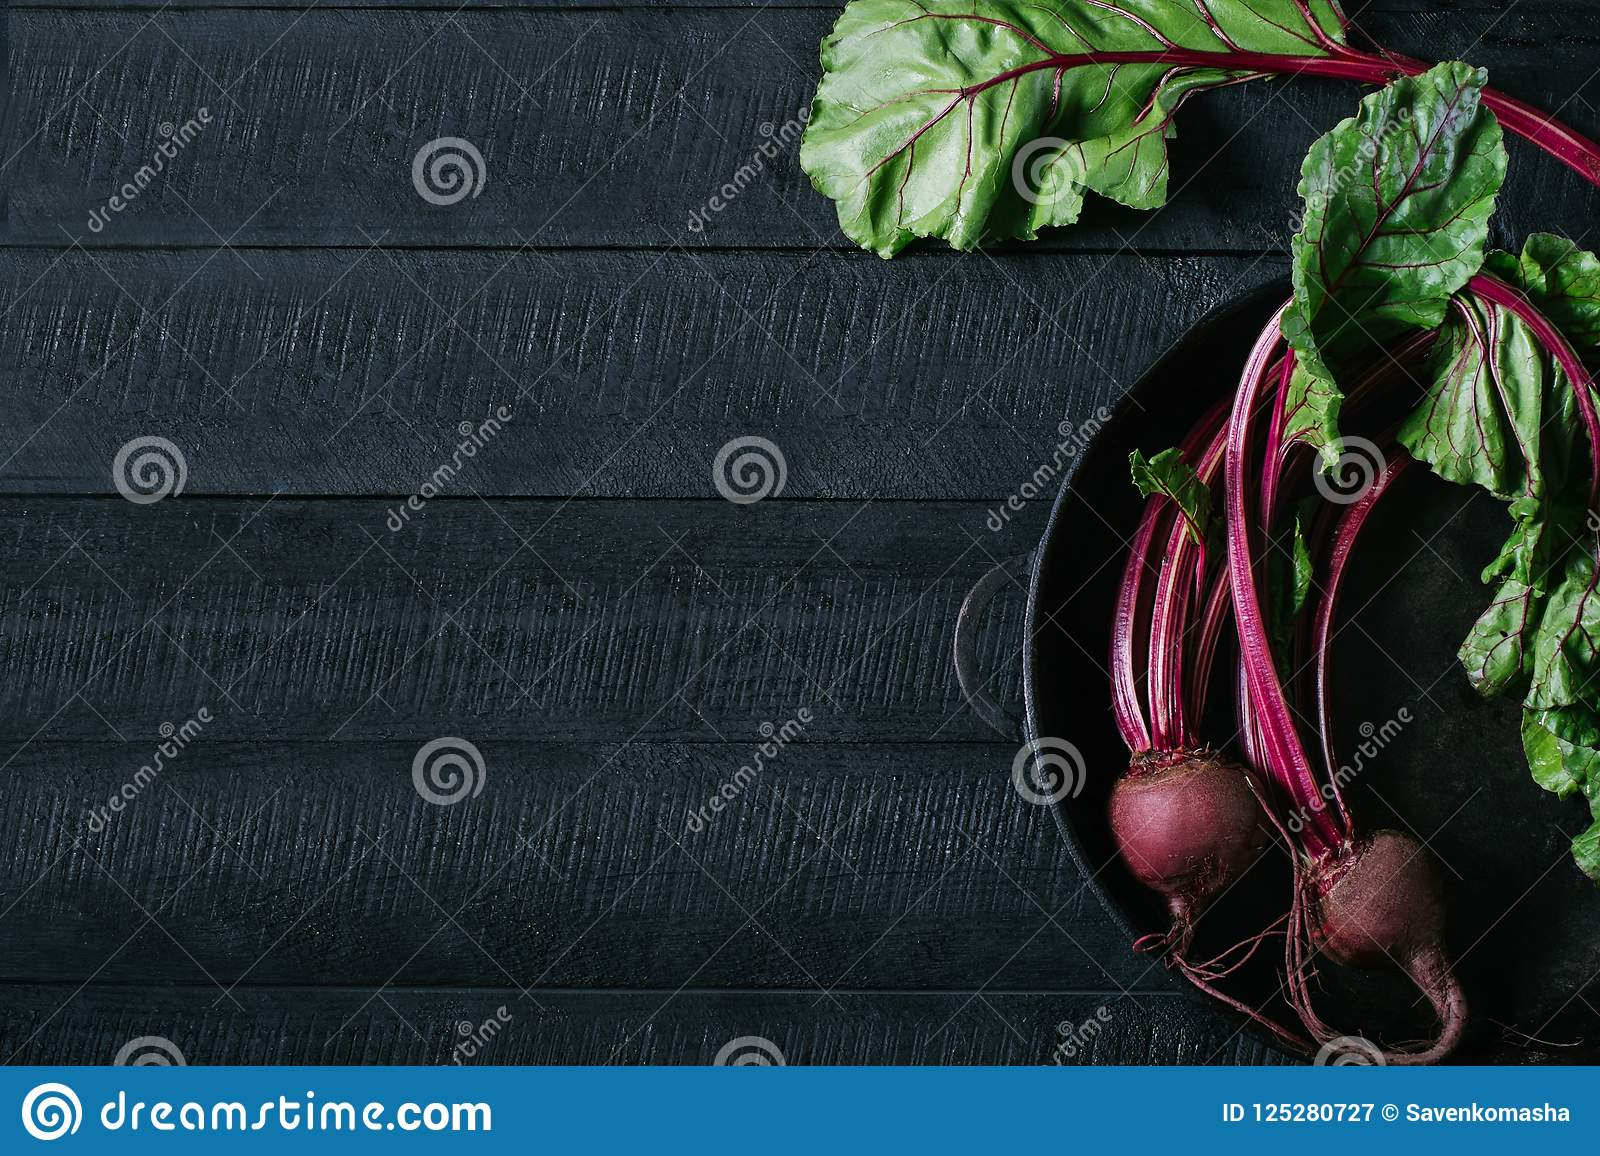 Beets with green tops in round metal pan on dark black wooden background, fresh red beetroot on backdrop kitchen table top view